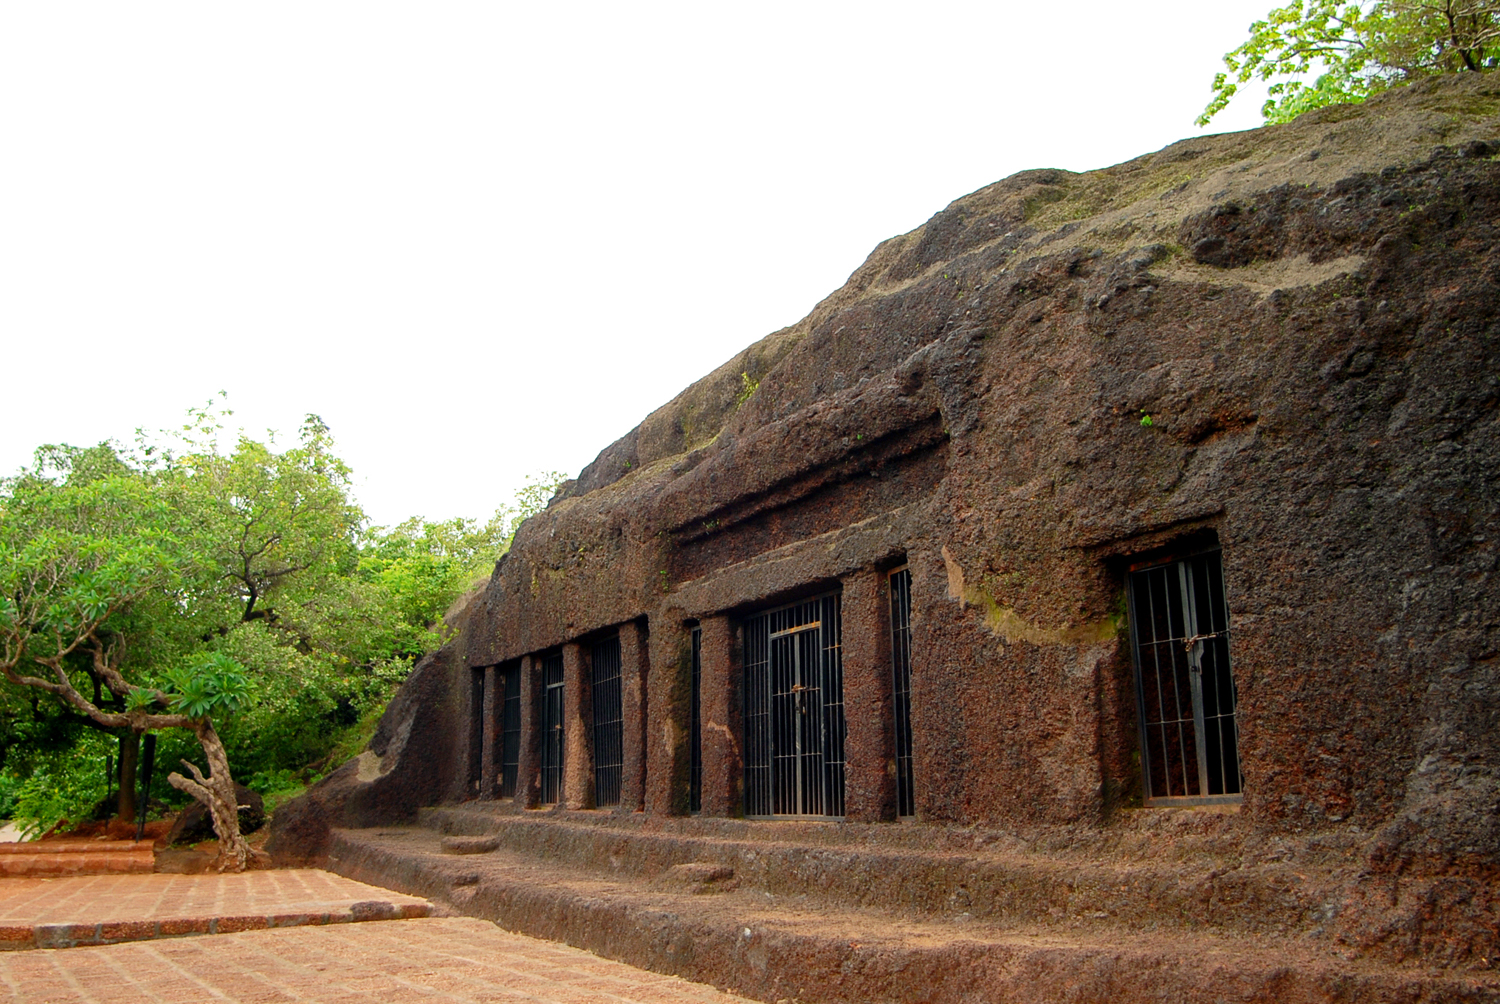 Visit the Surreal Caves - Don't Leave Goa Without Experiencing this Alternative Things